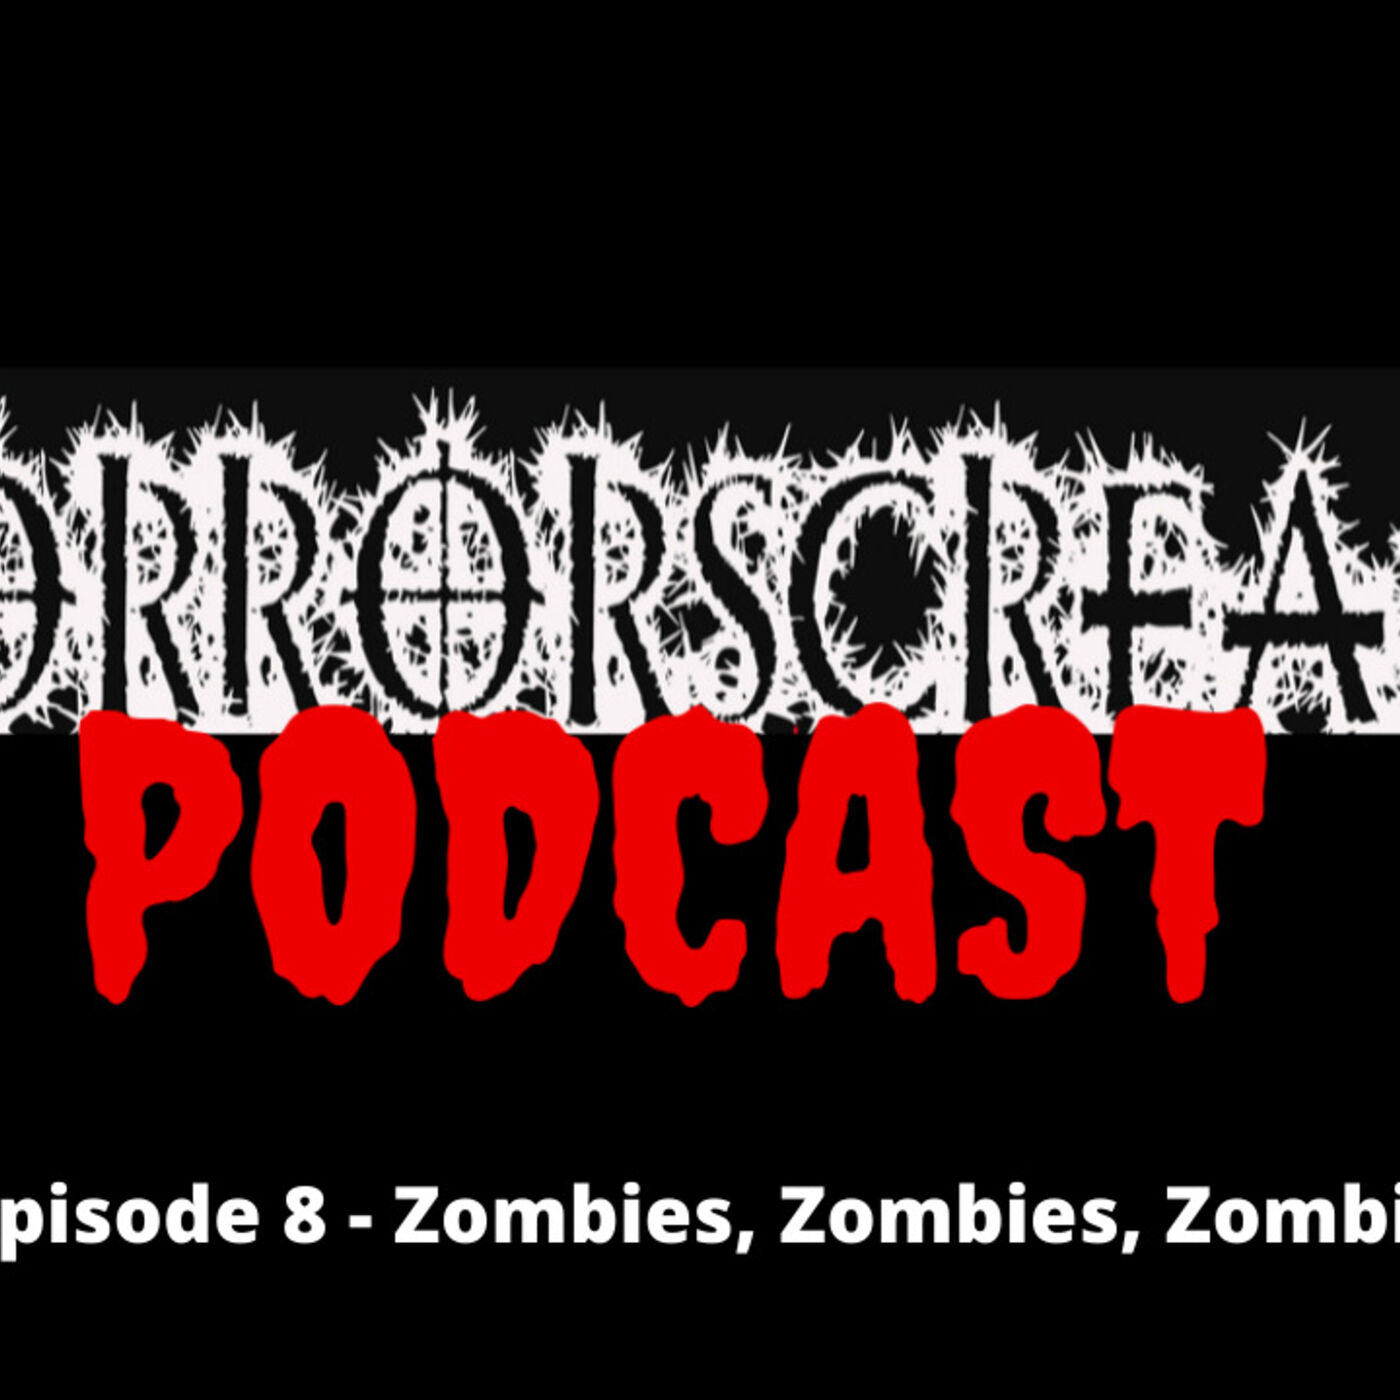 HORRORSCREAMS PODCAST: Episode 8 - Zombies, Zombies, Zombies.